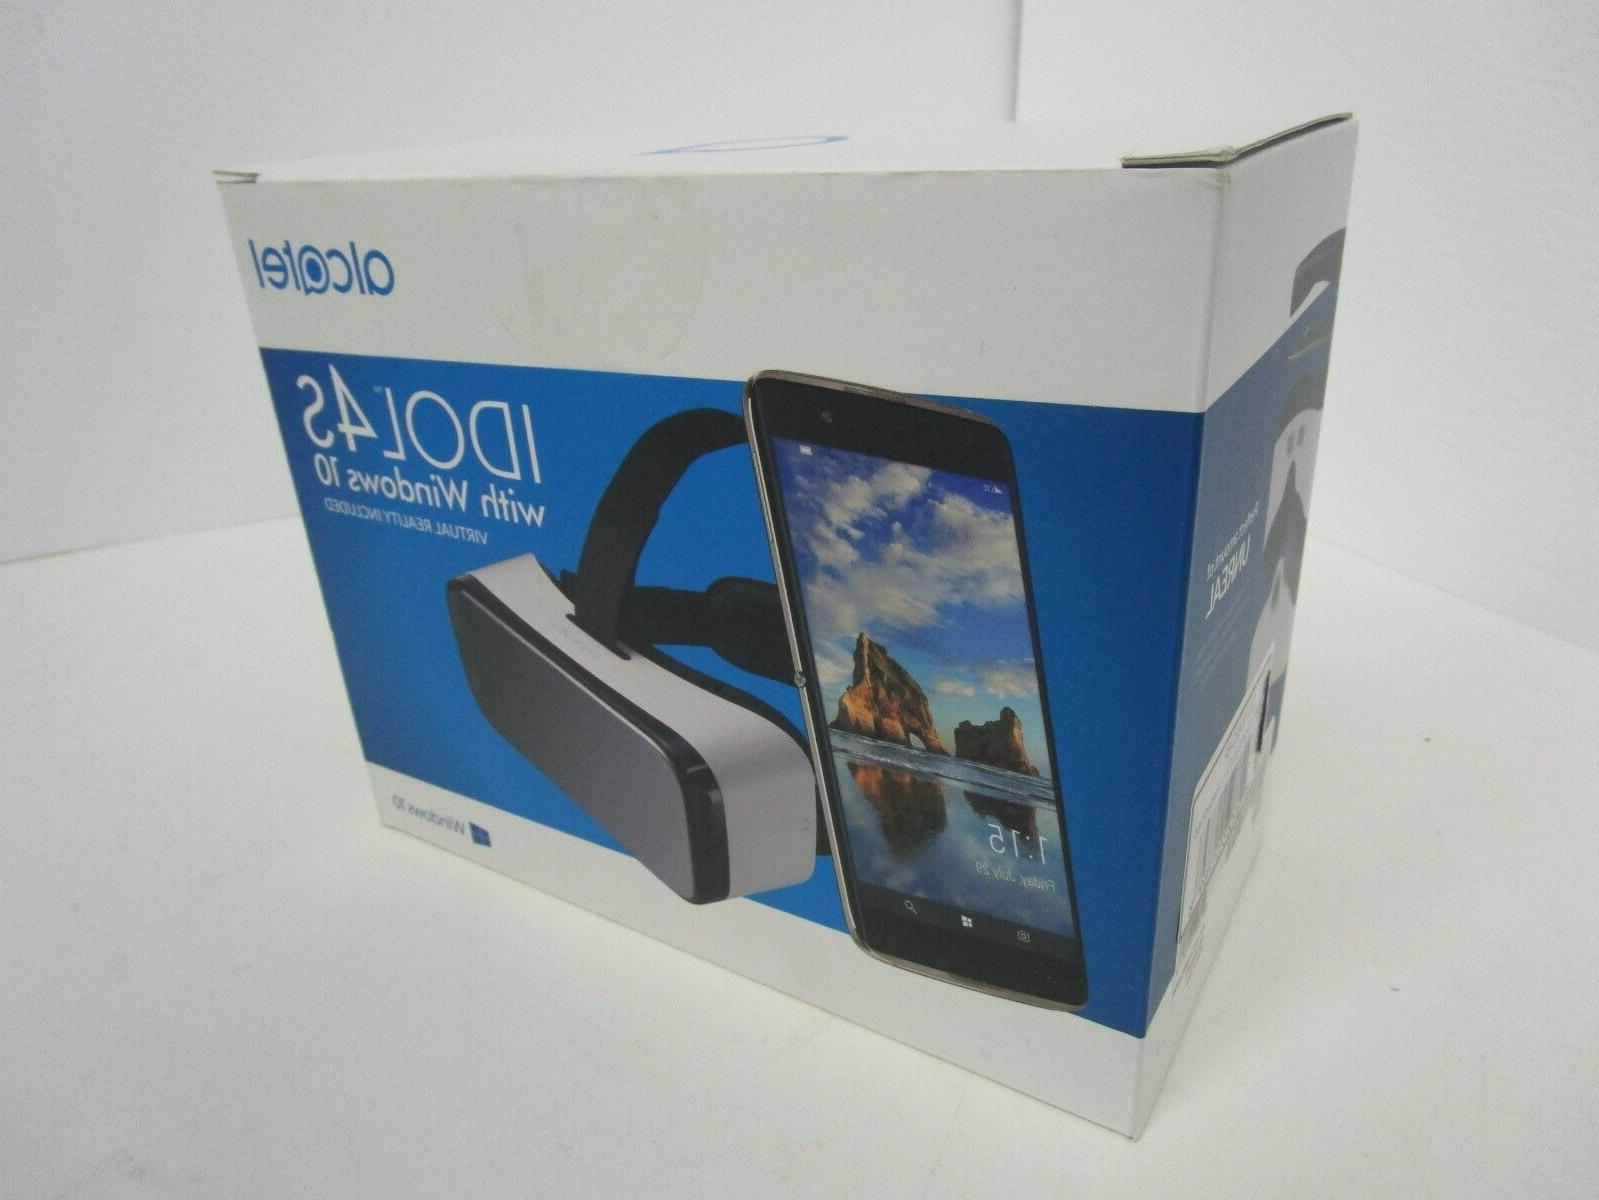 idol 4s 64gb windows 10 os 5